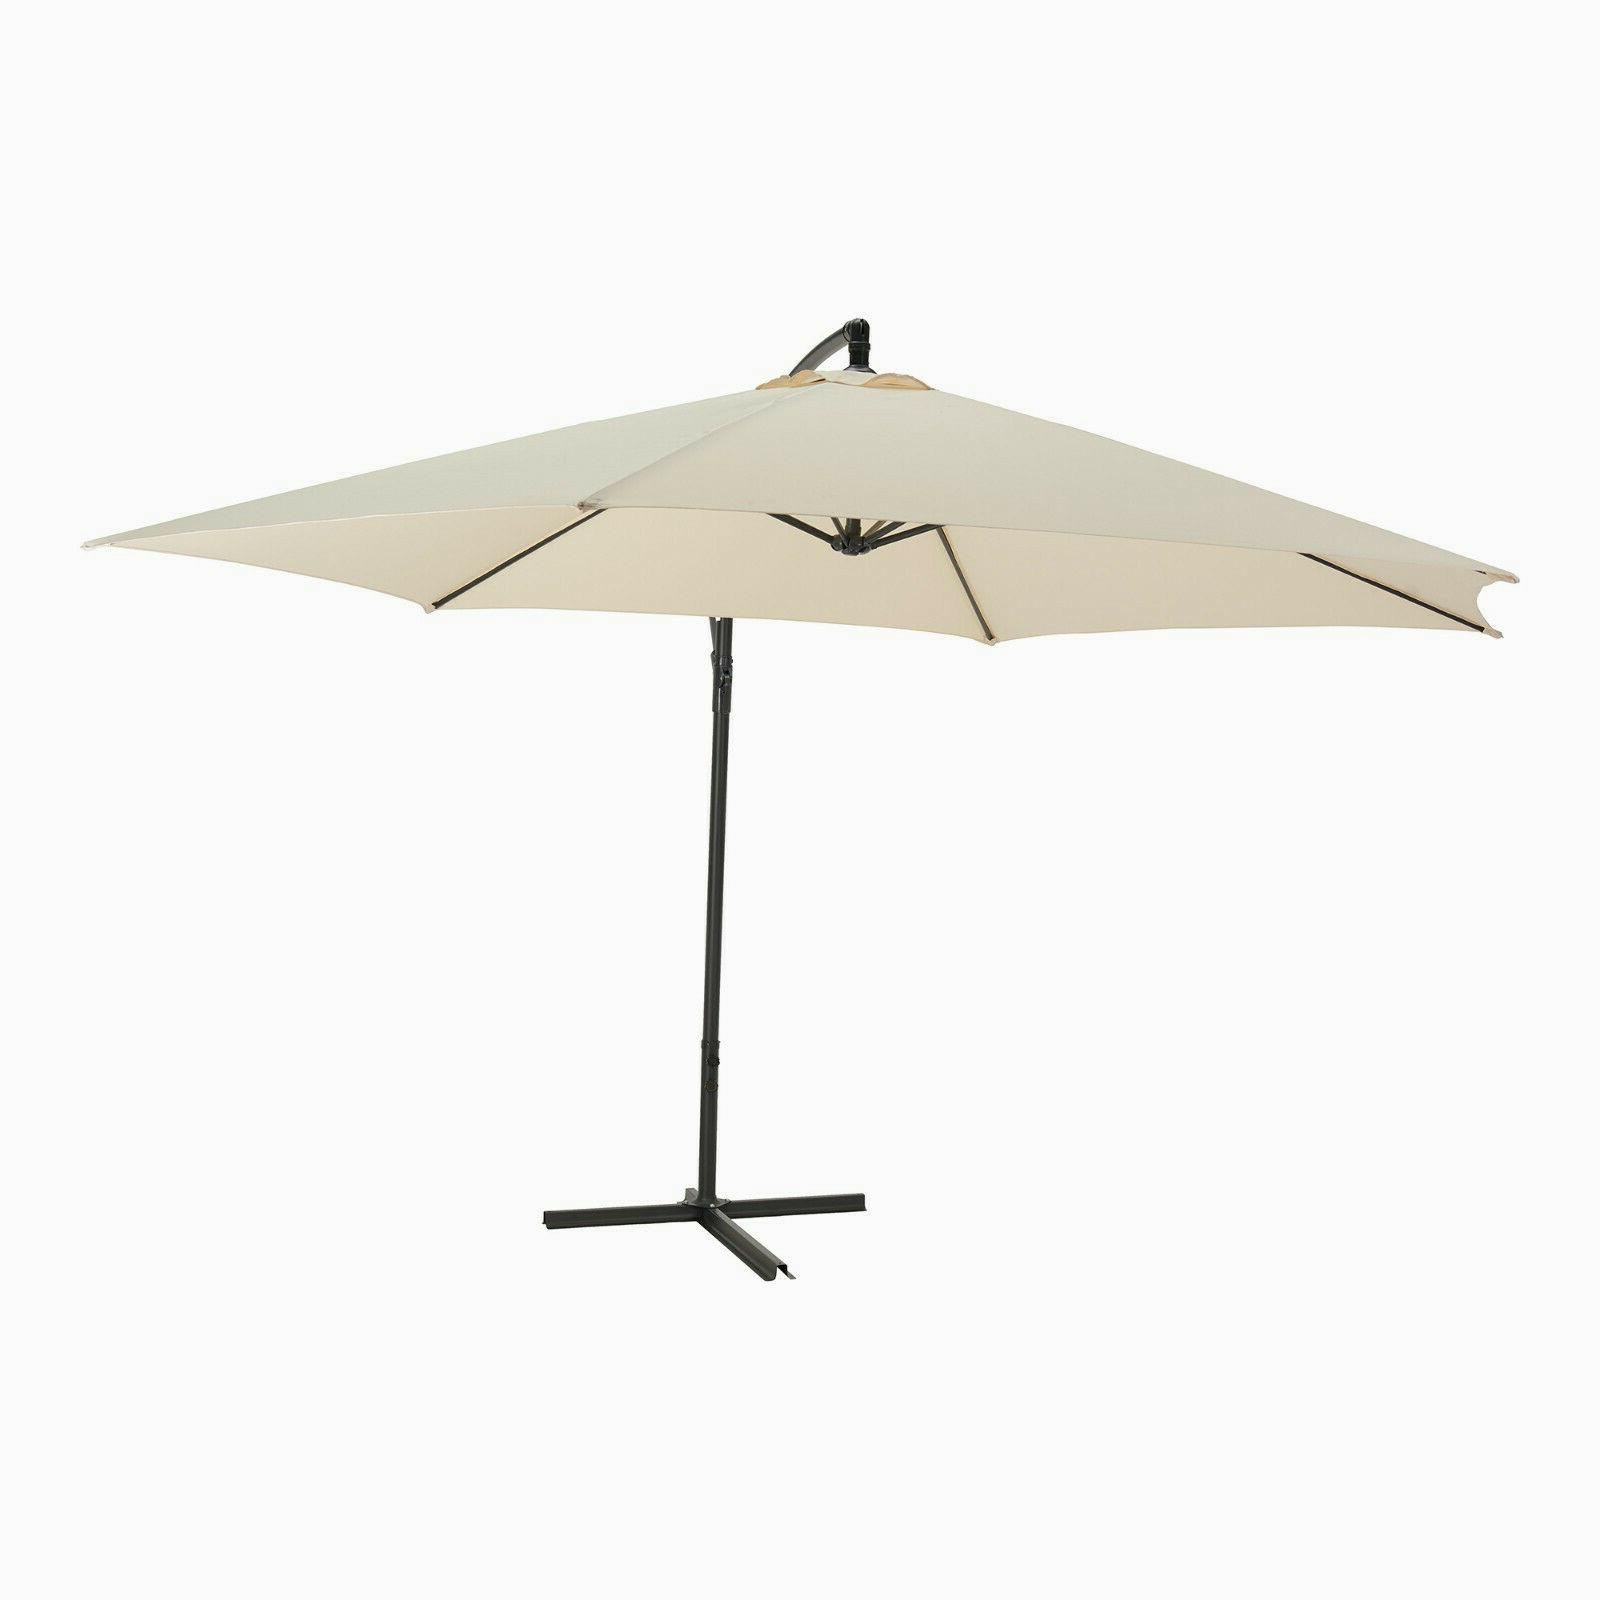 12ft Outdoor Patio Cantilever Umbrella Off Set Hanging Canopy Deck